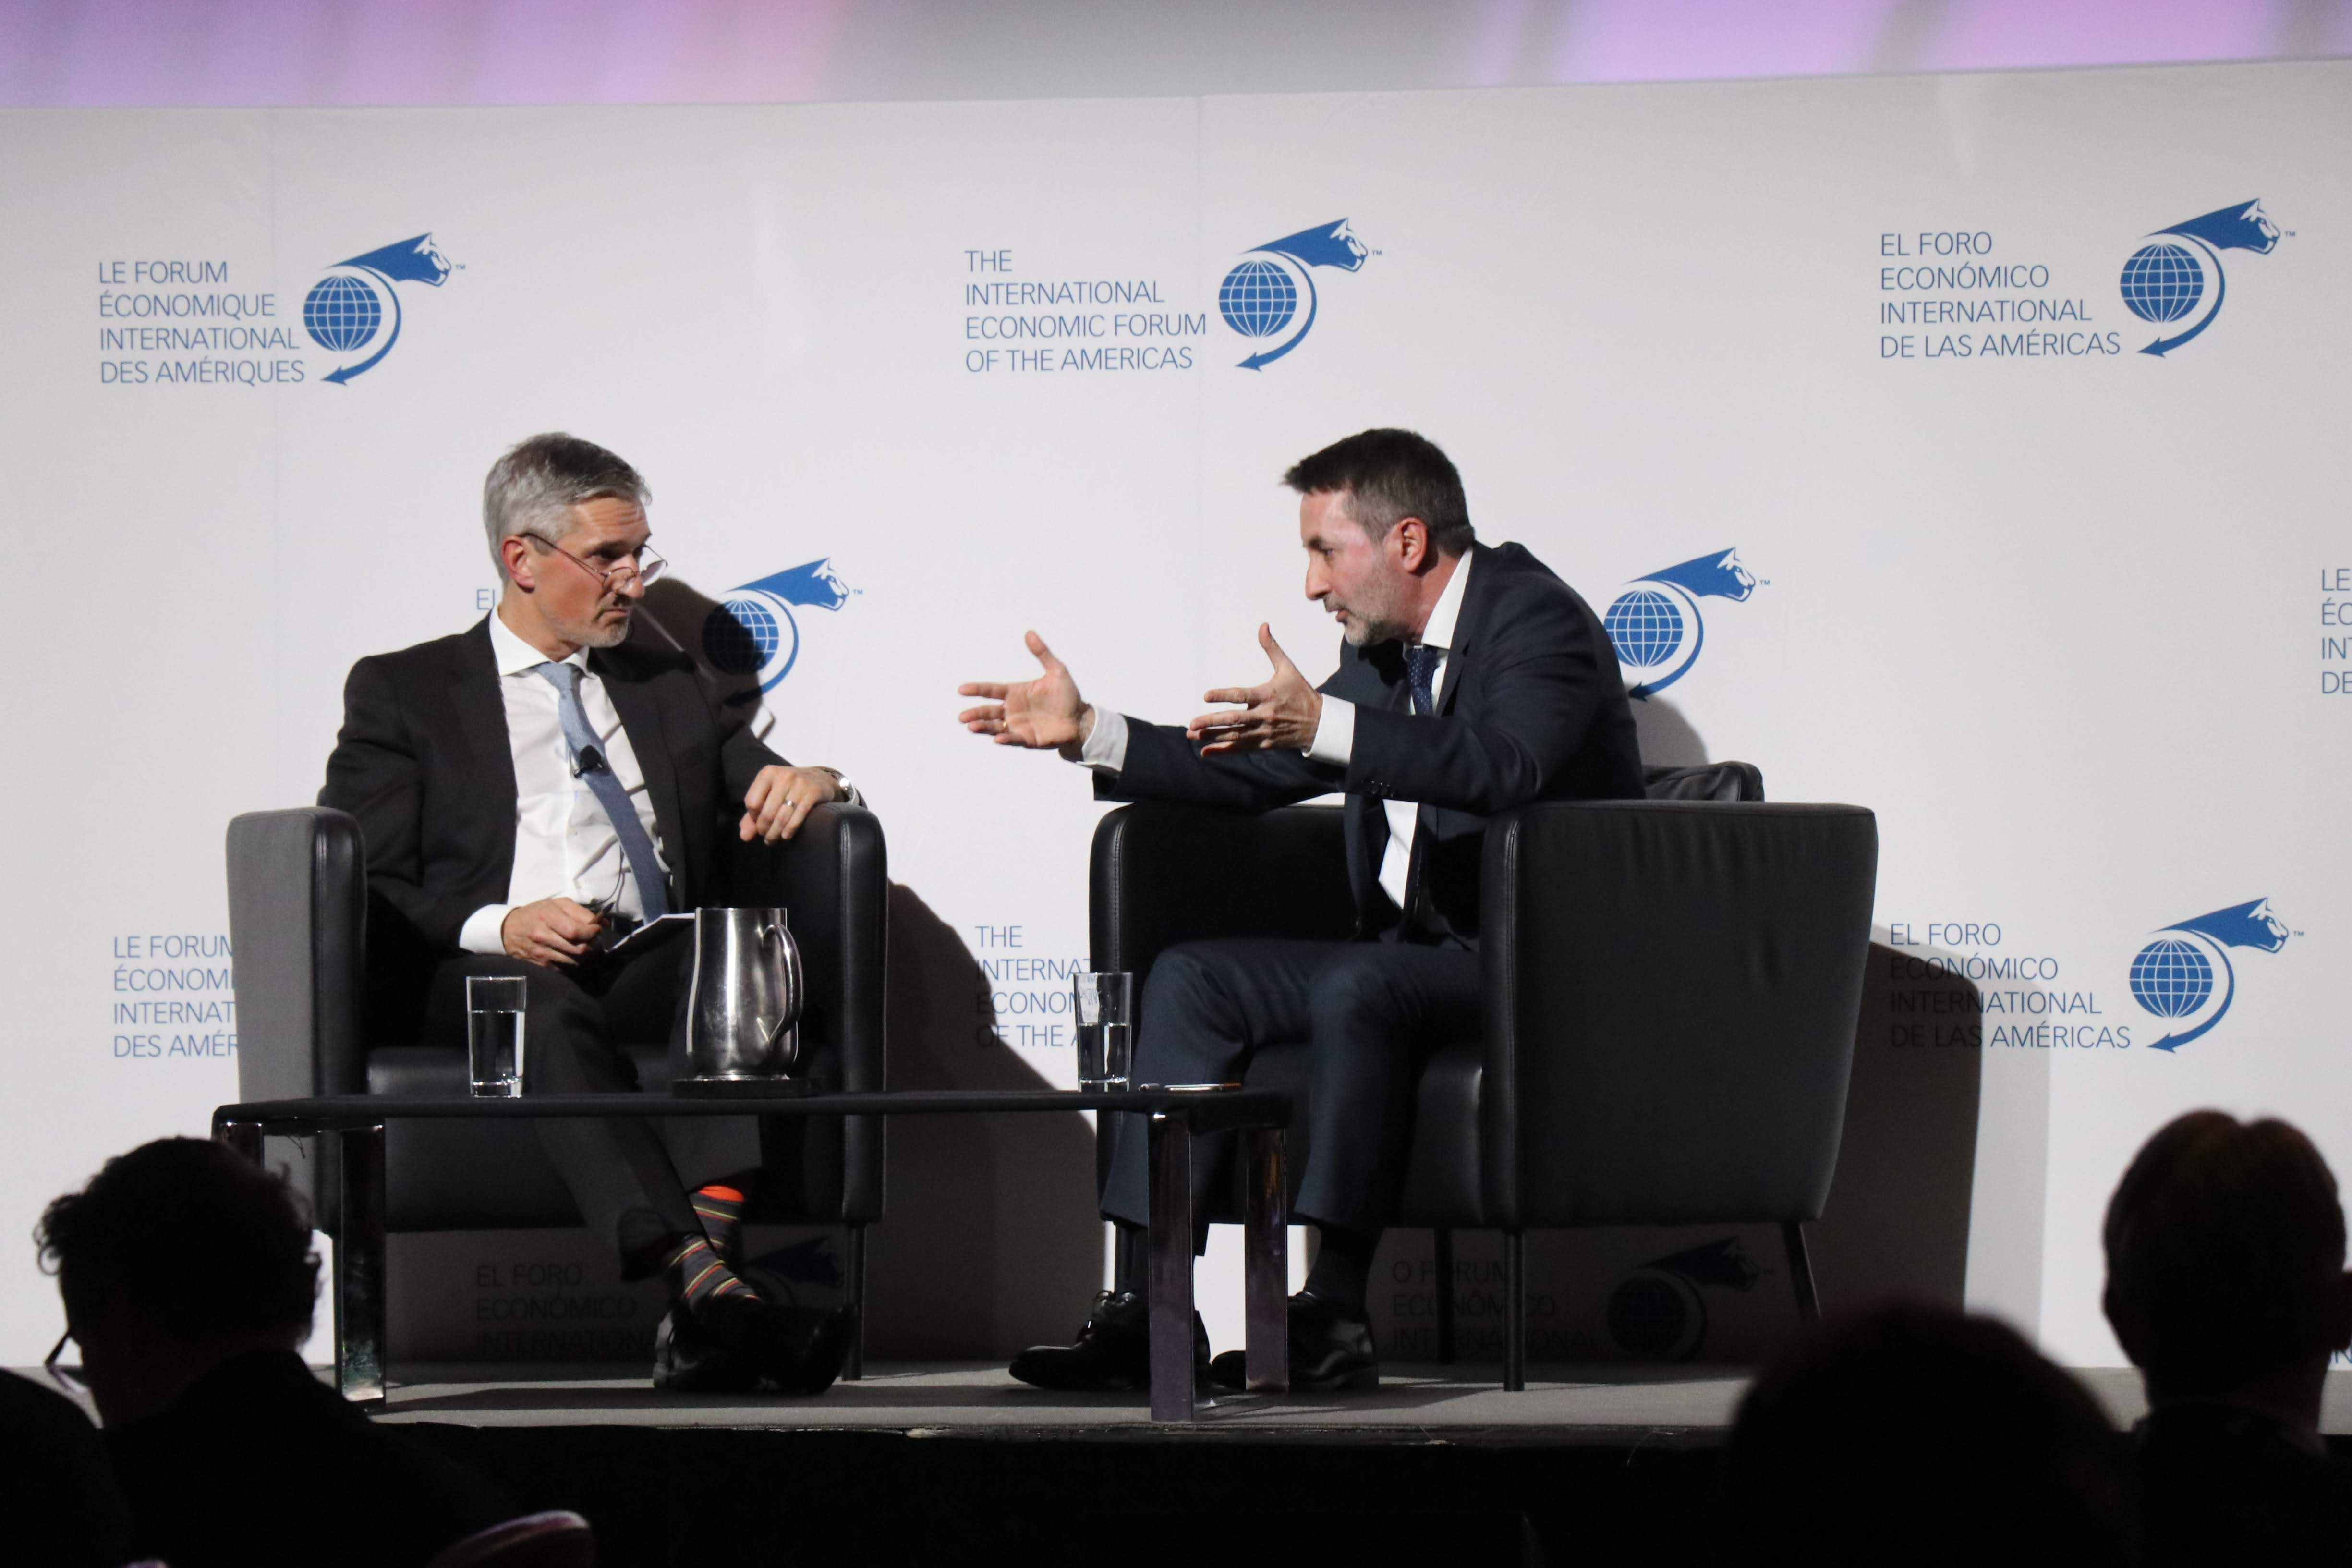 Luncheon - Josu Jon Imaz, Chief Executive Officer, Repsol interviewed by Christoph Frei, Secretary General and Chief Executive Officer, World Energy Council (WEC)